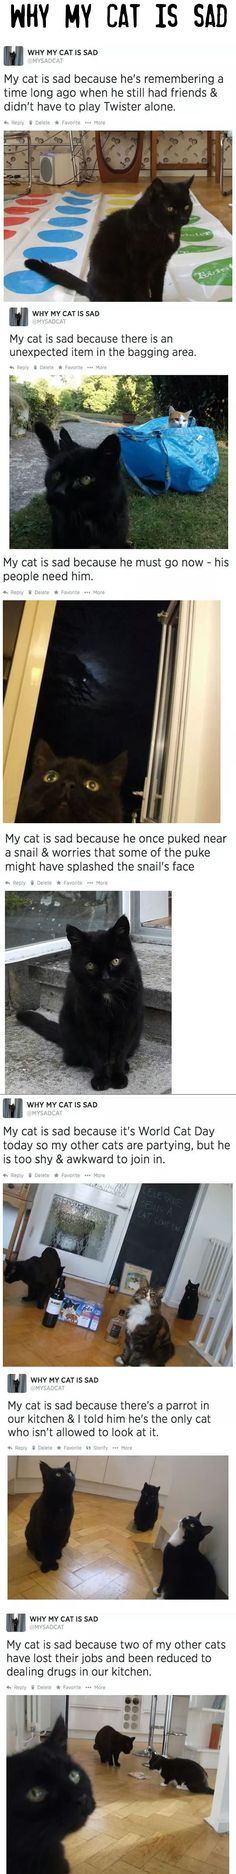 funny sad cat. why my cat is sad.